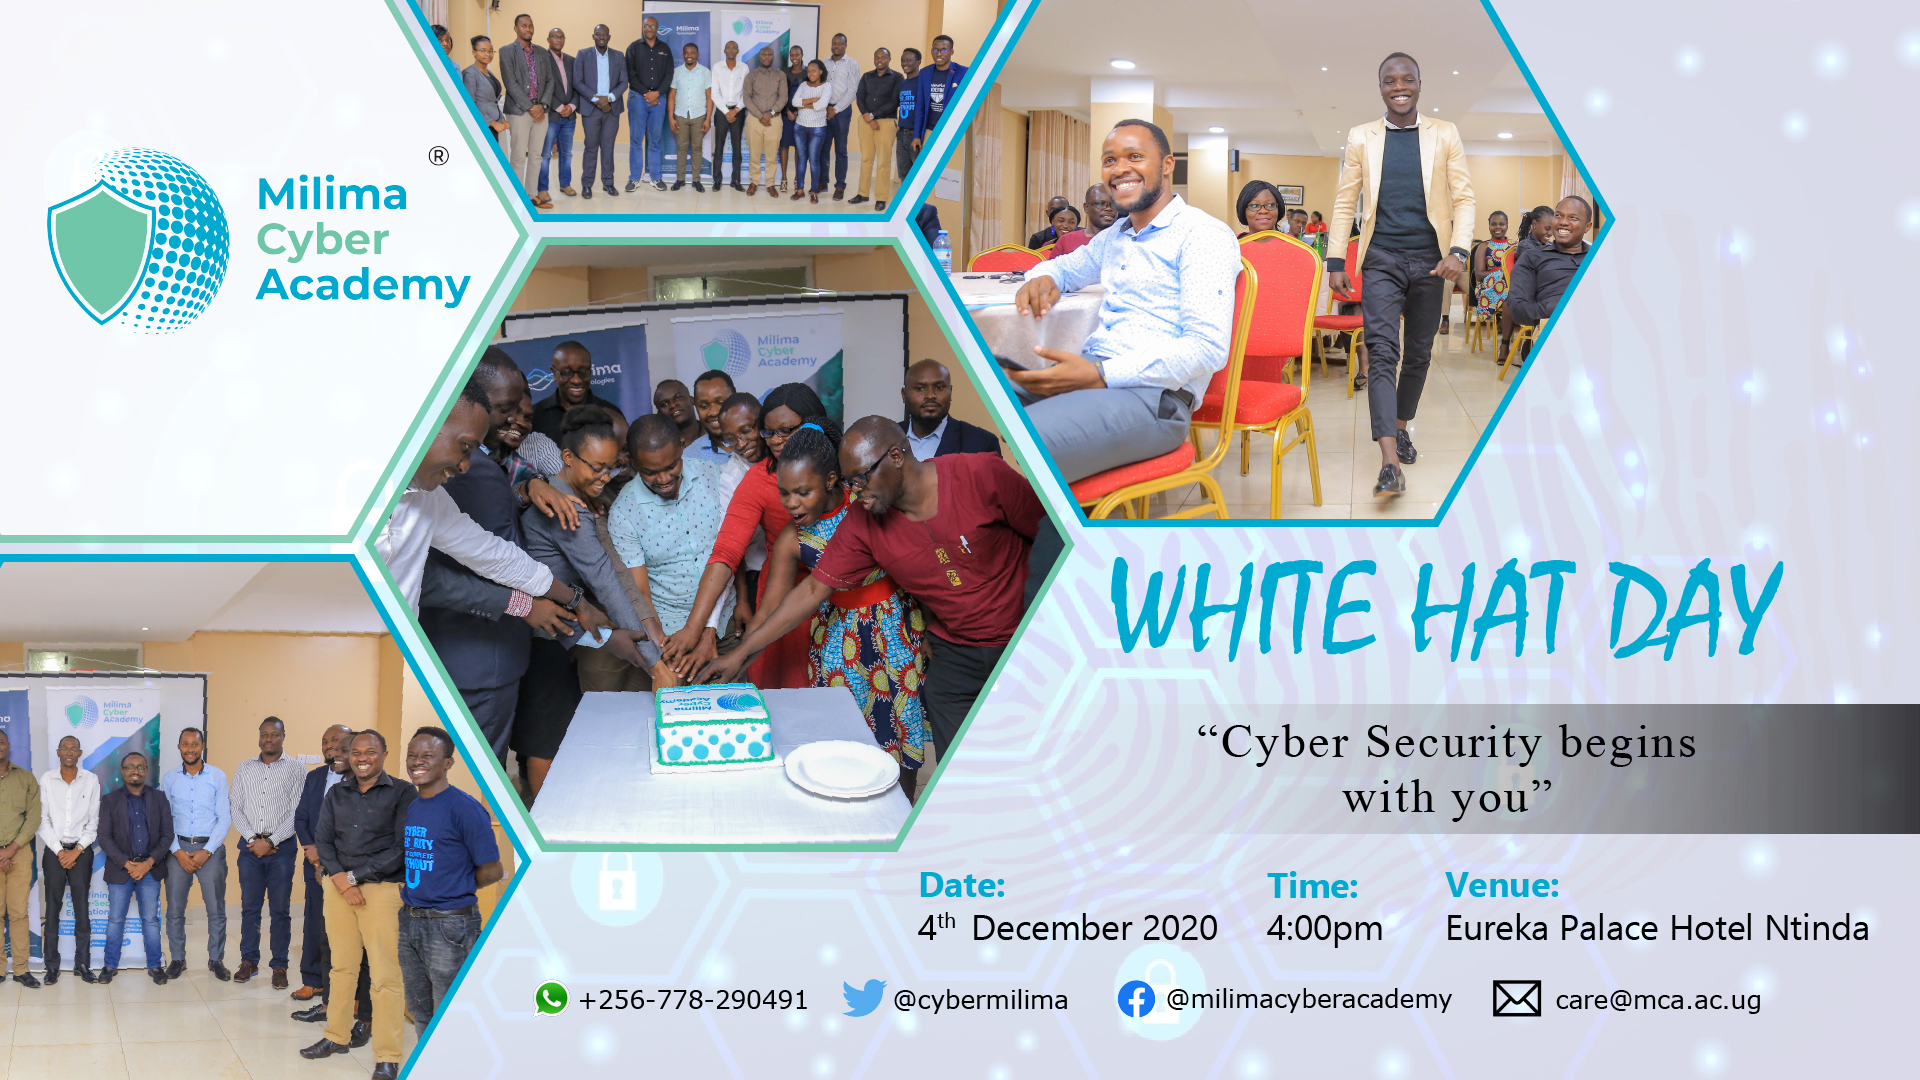 Milima Cyber Academy's White Hat Day 2020 set for Friday this week 1 MUGIBSON WRITES